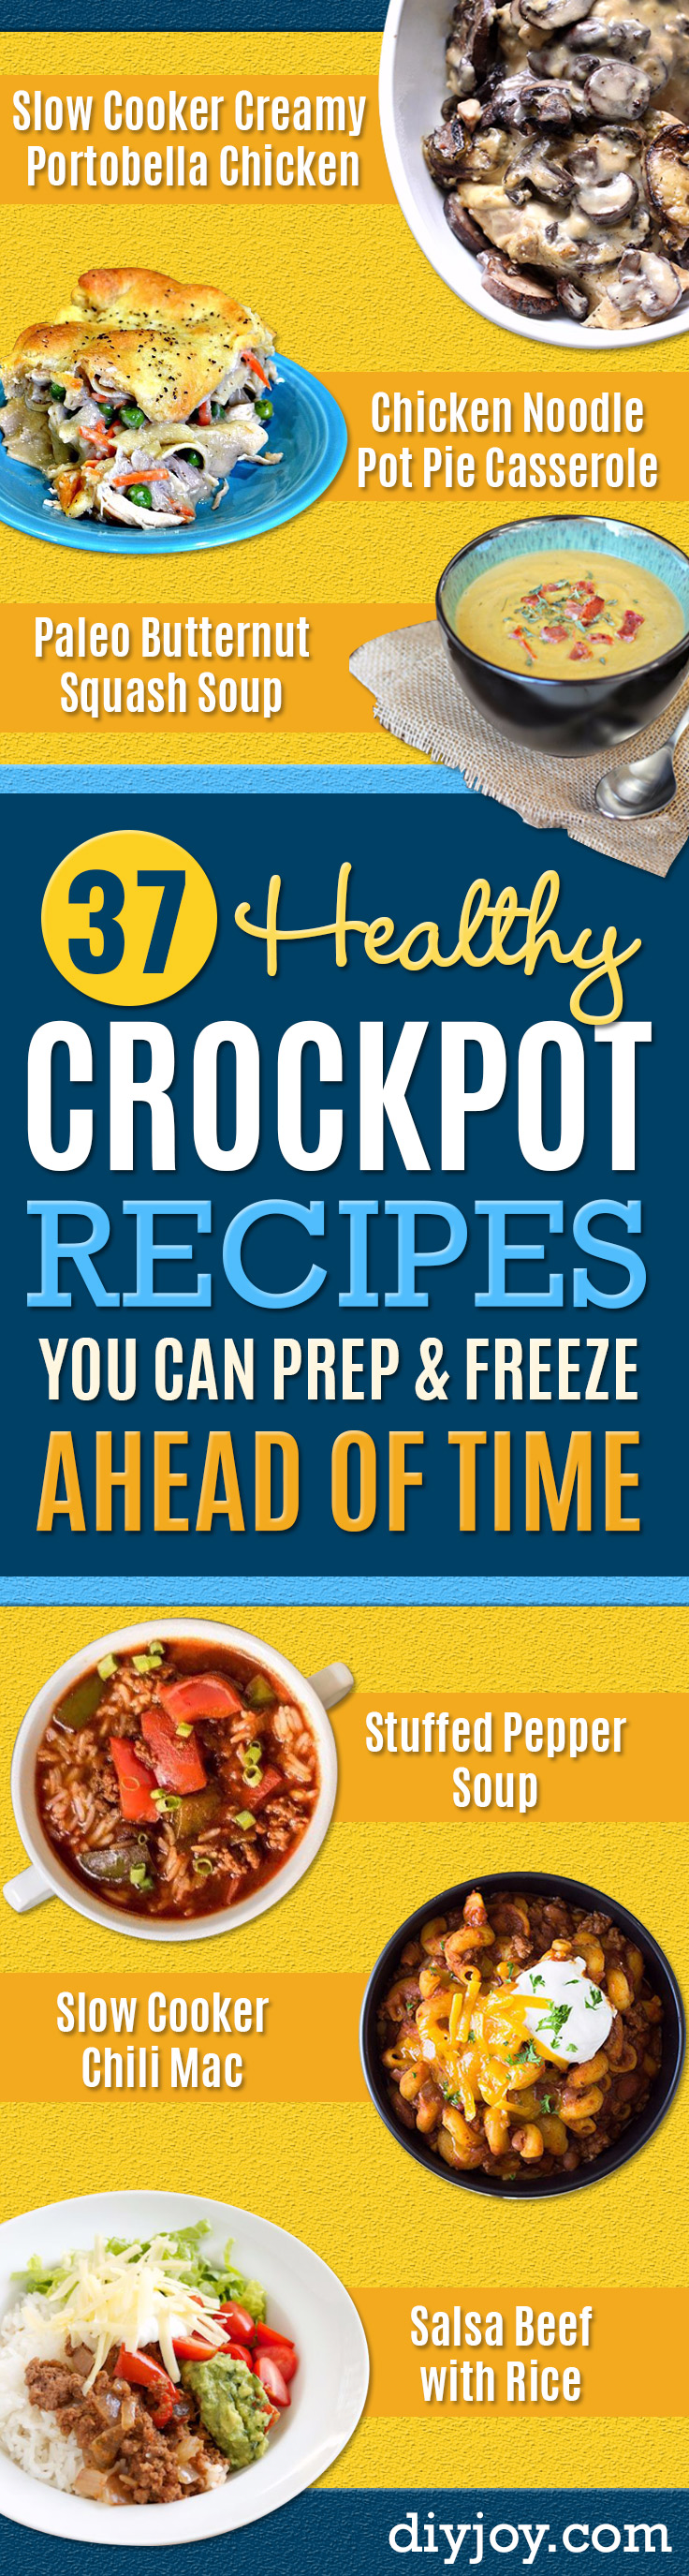 healthy crockpot recipes to make and freeze ahead - Easy and Quick Dinners, Soups, Sides You Make Put In The Freezer for Simple Last Minute Cooking - Low Fat Chicken, Veggies, Stews, Vegetable Sides and Beef Meals for Your Slow Cooker and Crock Pot